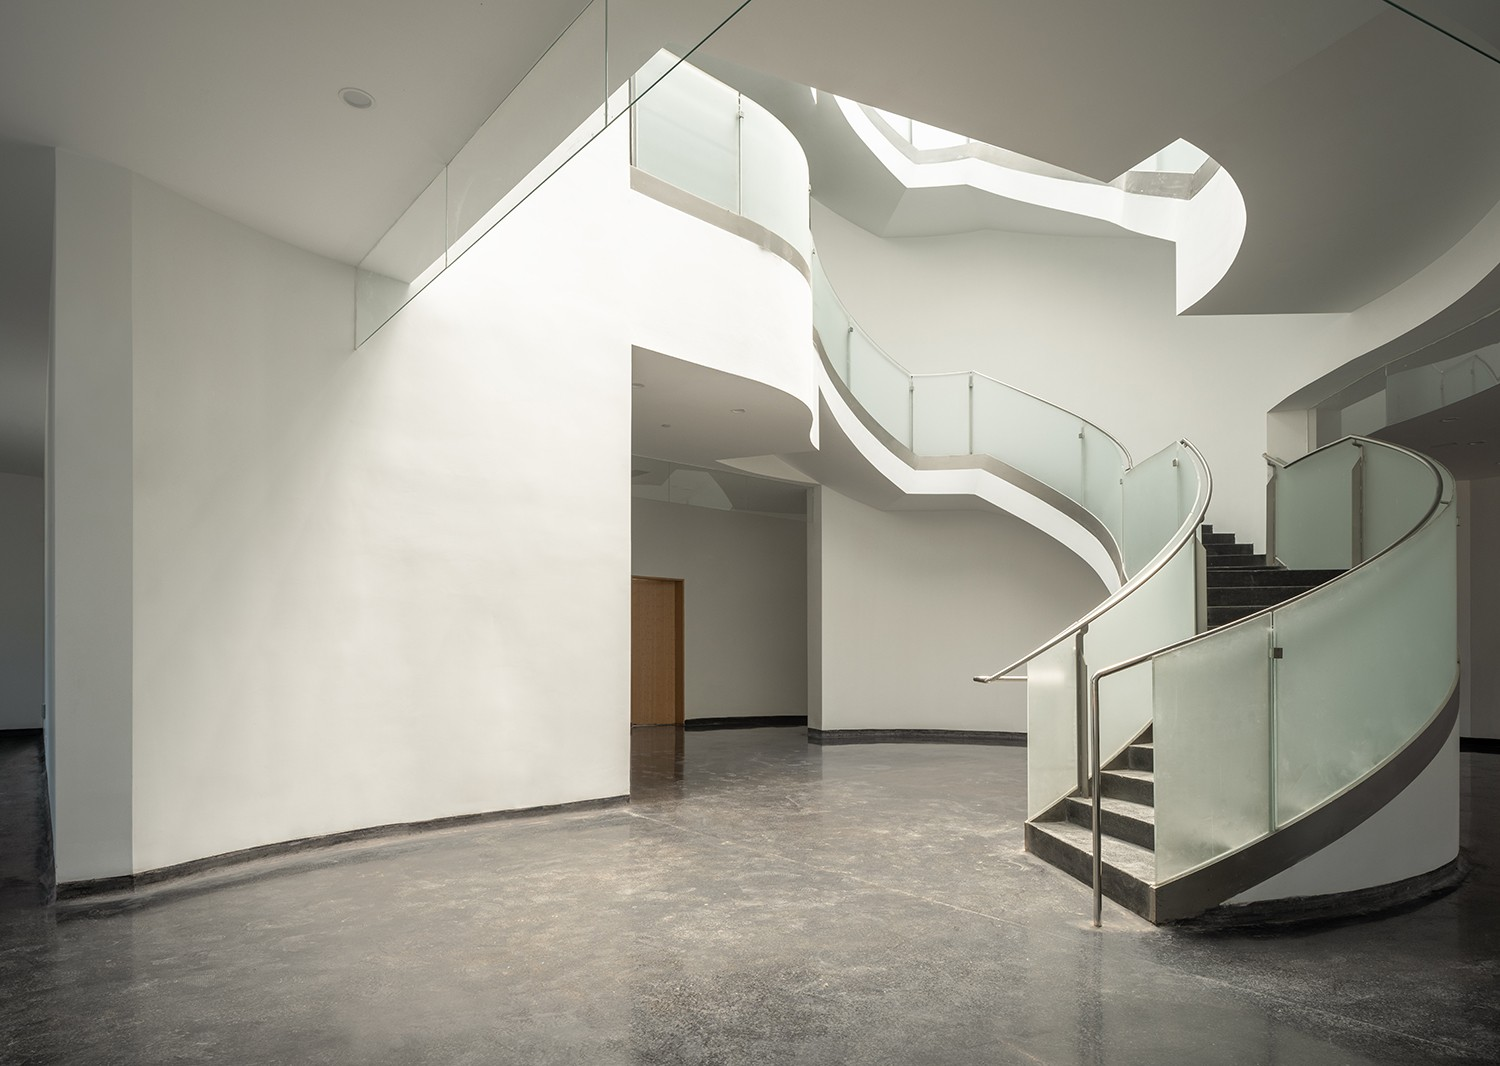 https://stevenholl.sfo2.digitaloceanspaces.com/uploads/projects/project-images/COFCO_interiorstair_Aogvision.jpg